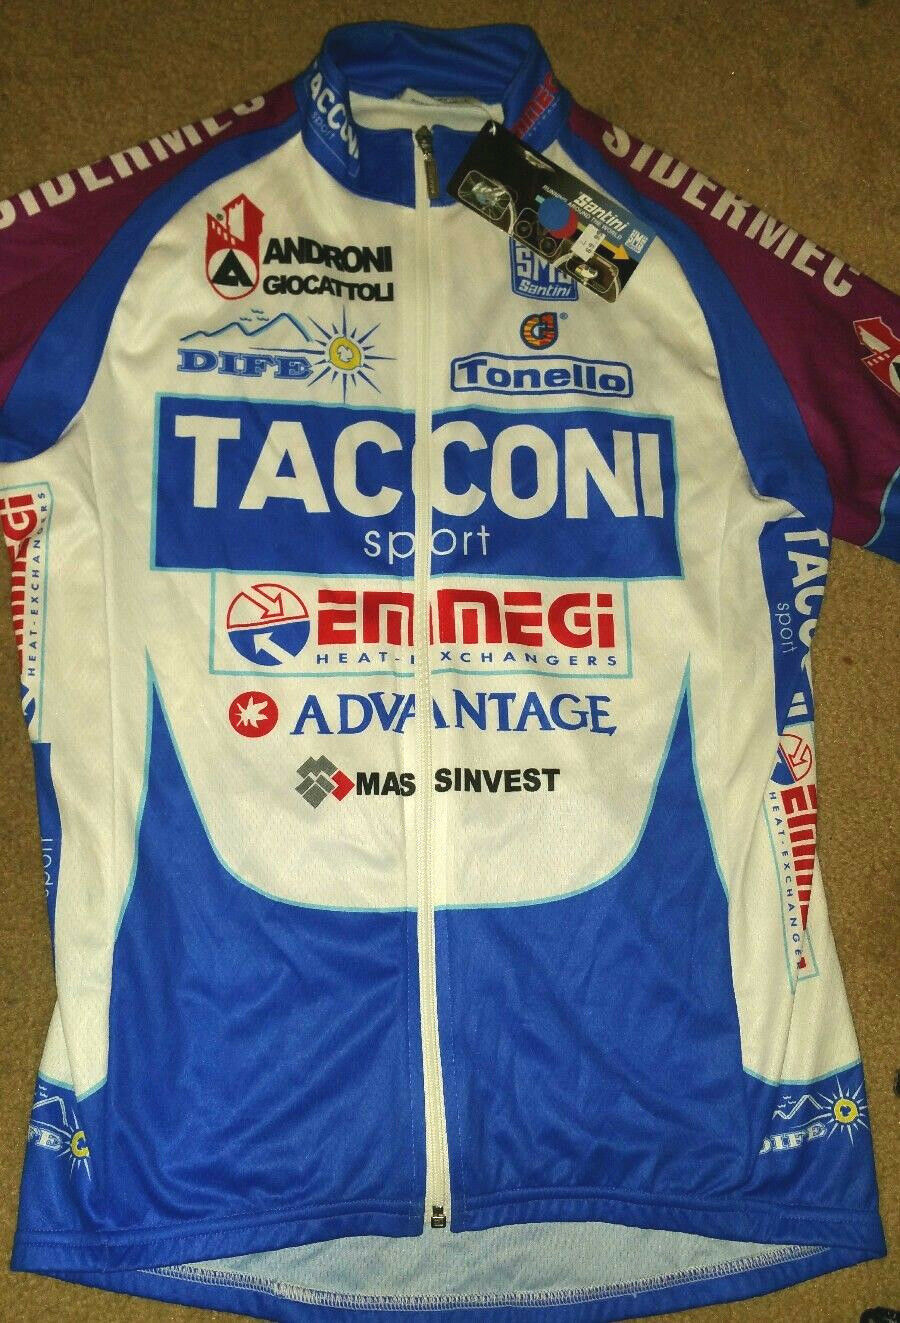 NWT Cycling Jersey Santini Tonello  Tacconi Sport Androni Giocattoli Seride SZ L  the best selection of